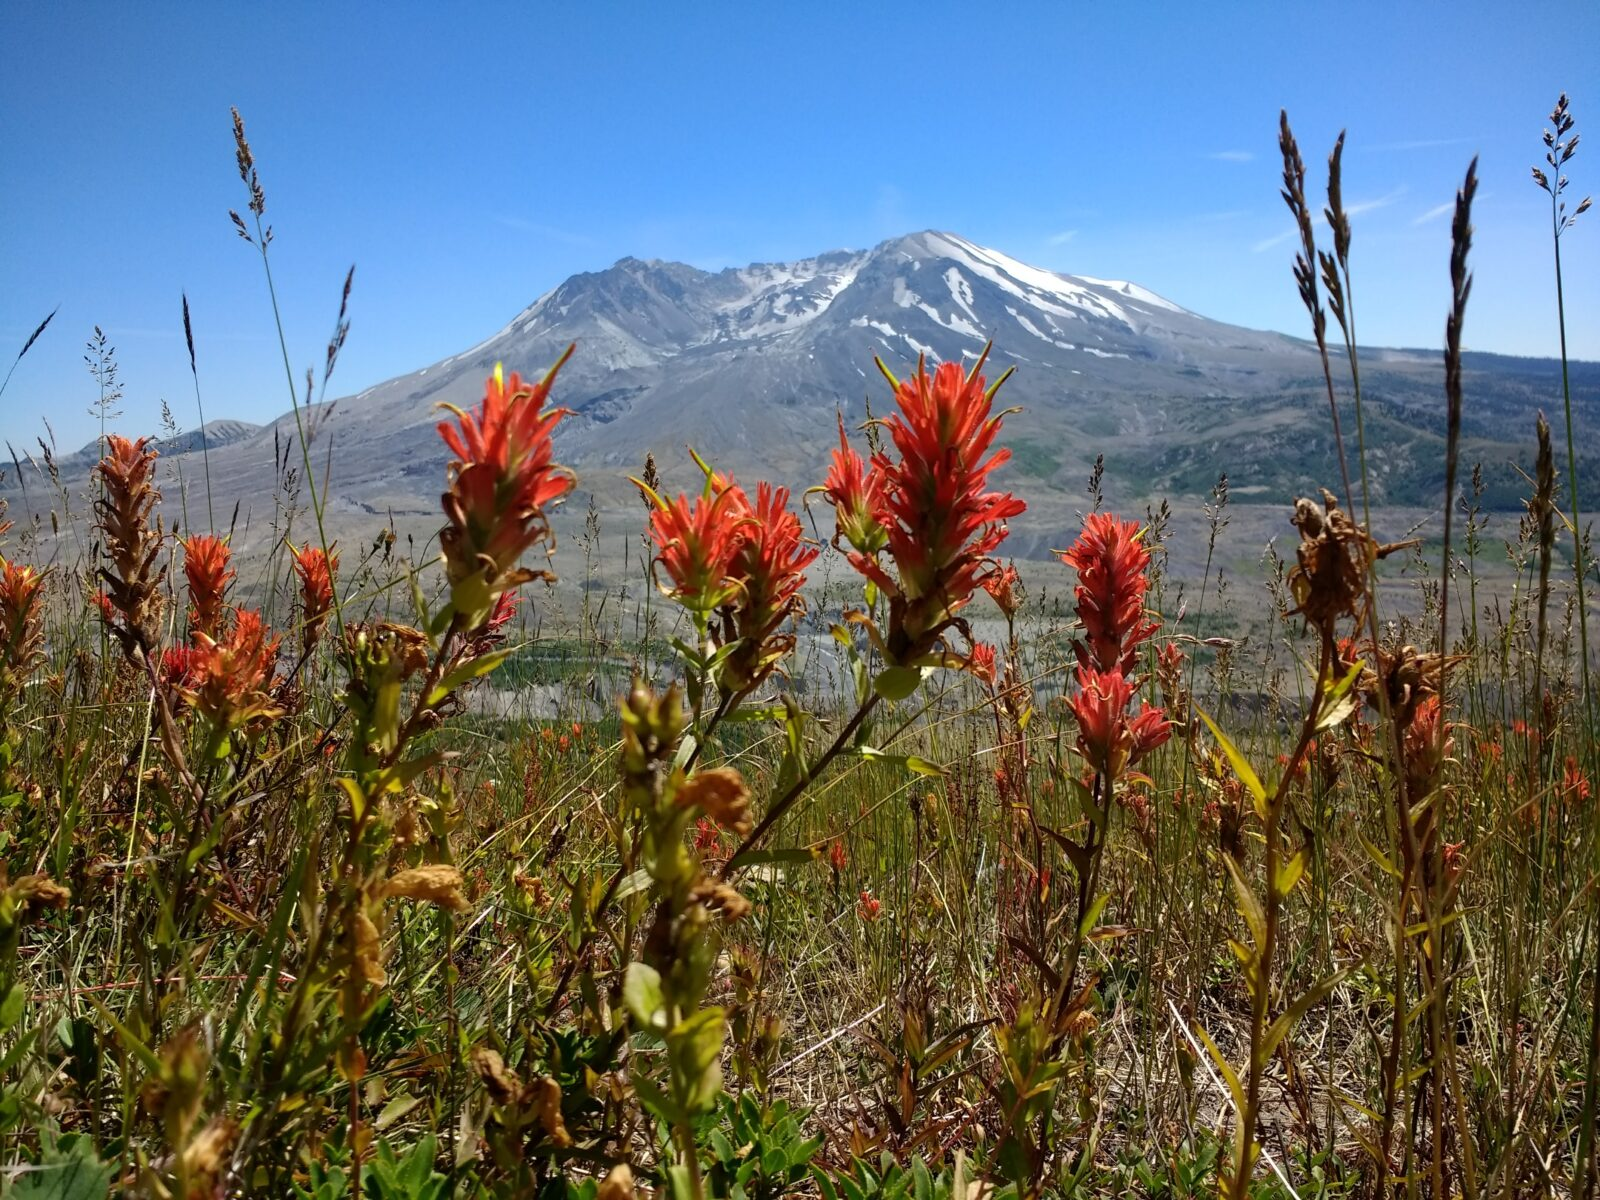 The crater of Mt St Helens is visible across the valley and there are bright red wildflowers in the foreground